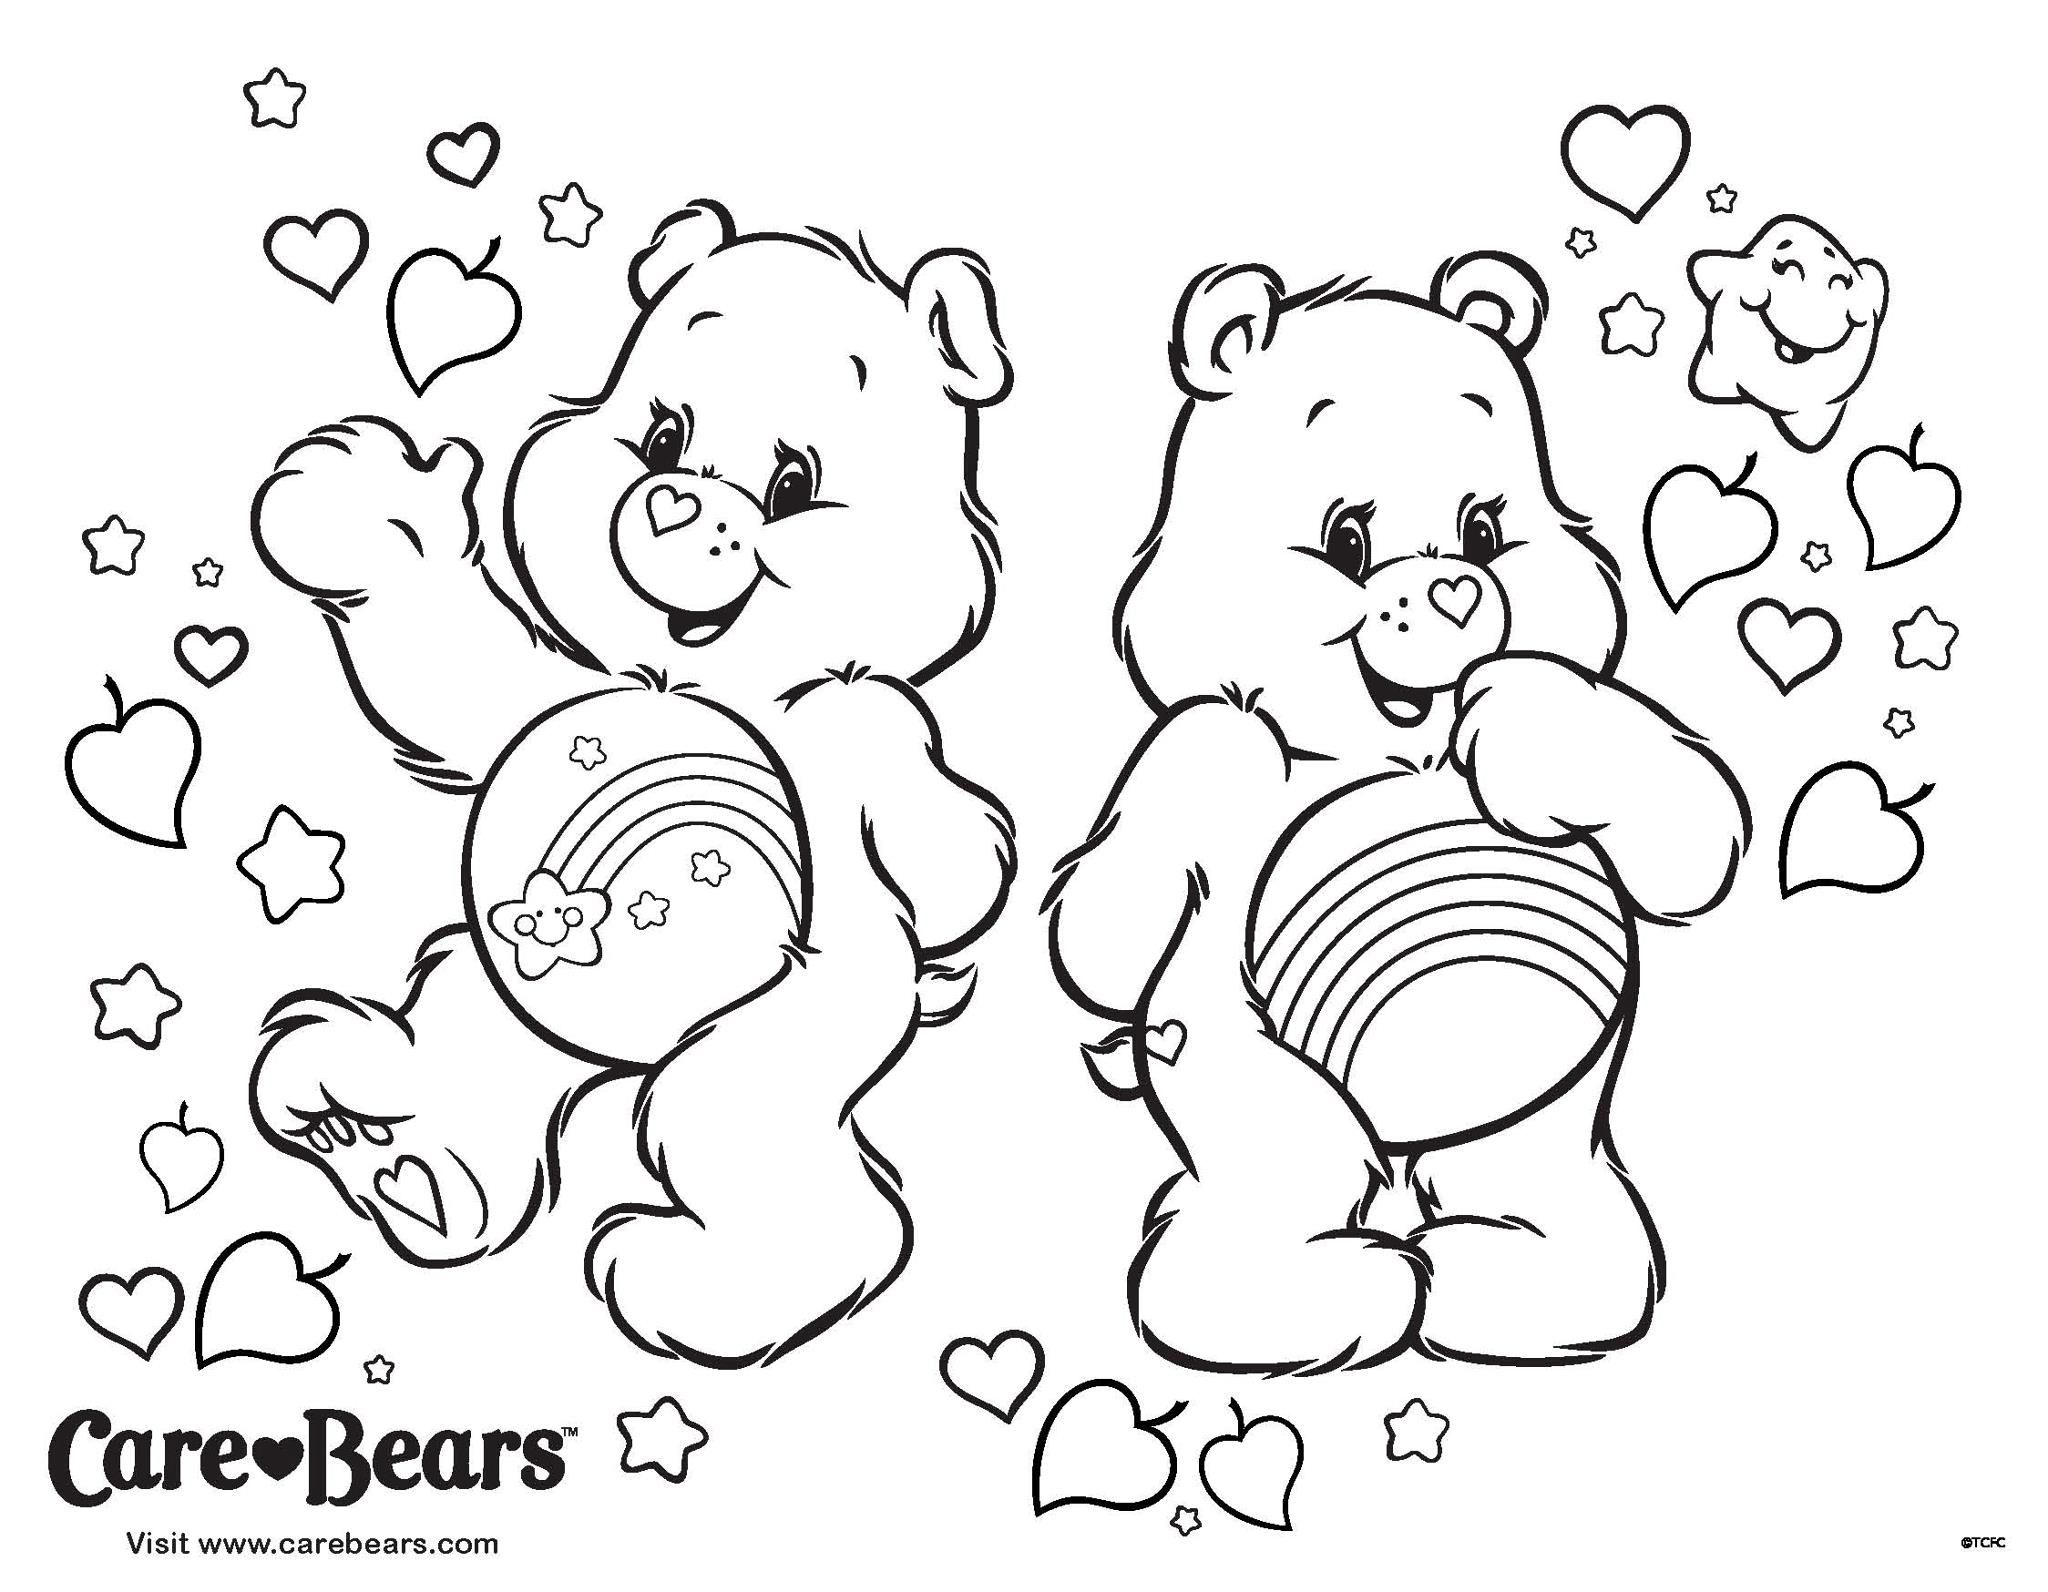 Care Bears Care Bears Coloring Pages Pinterest Malen